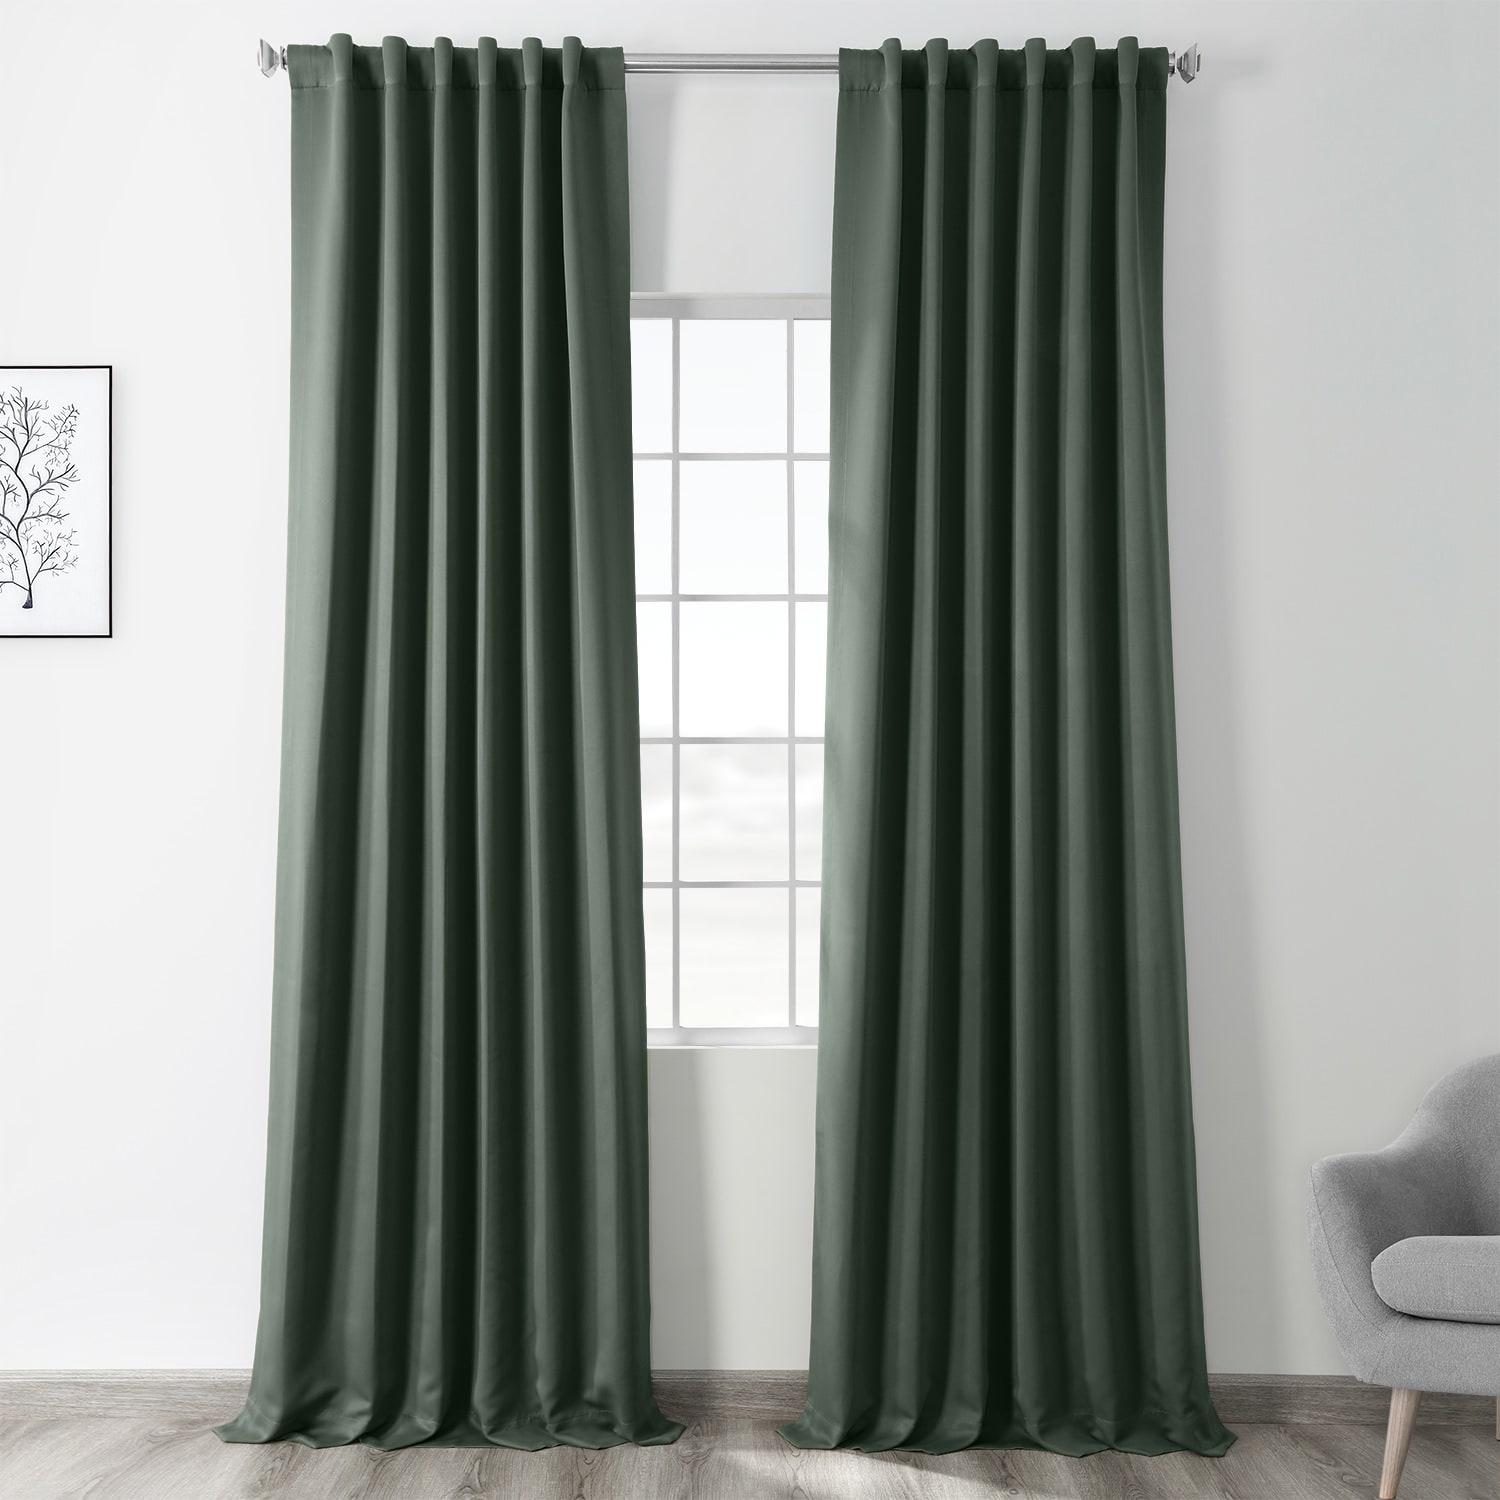 Dark Mallard Green Blackout Room Darkening Curtain